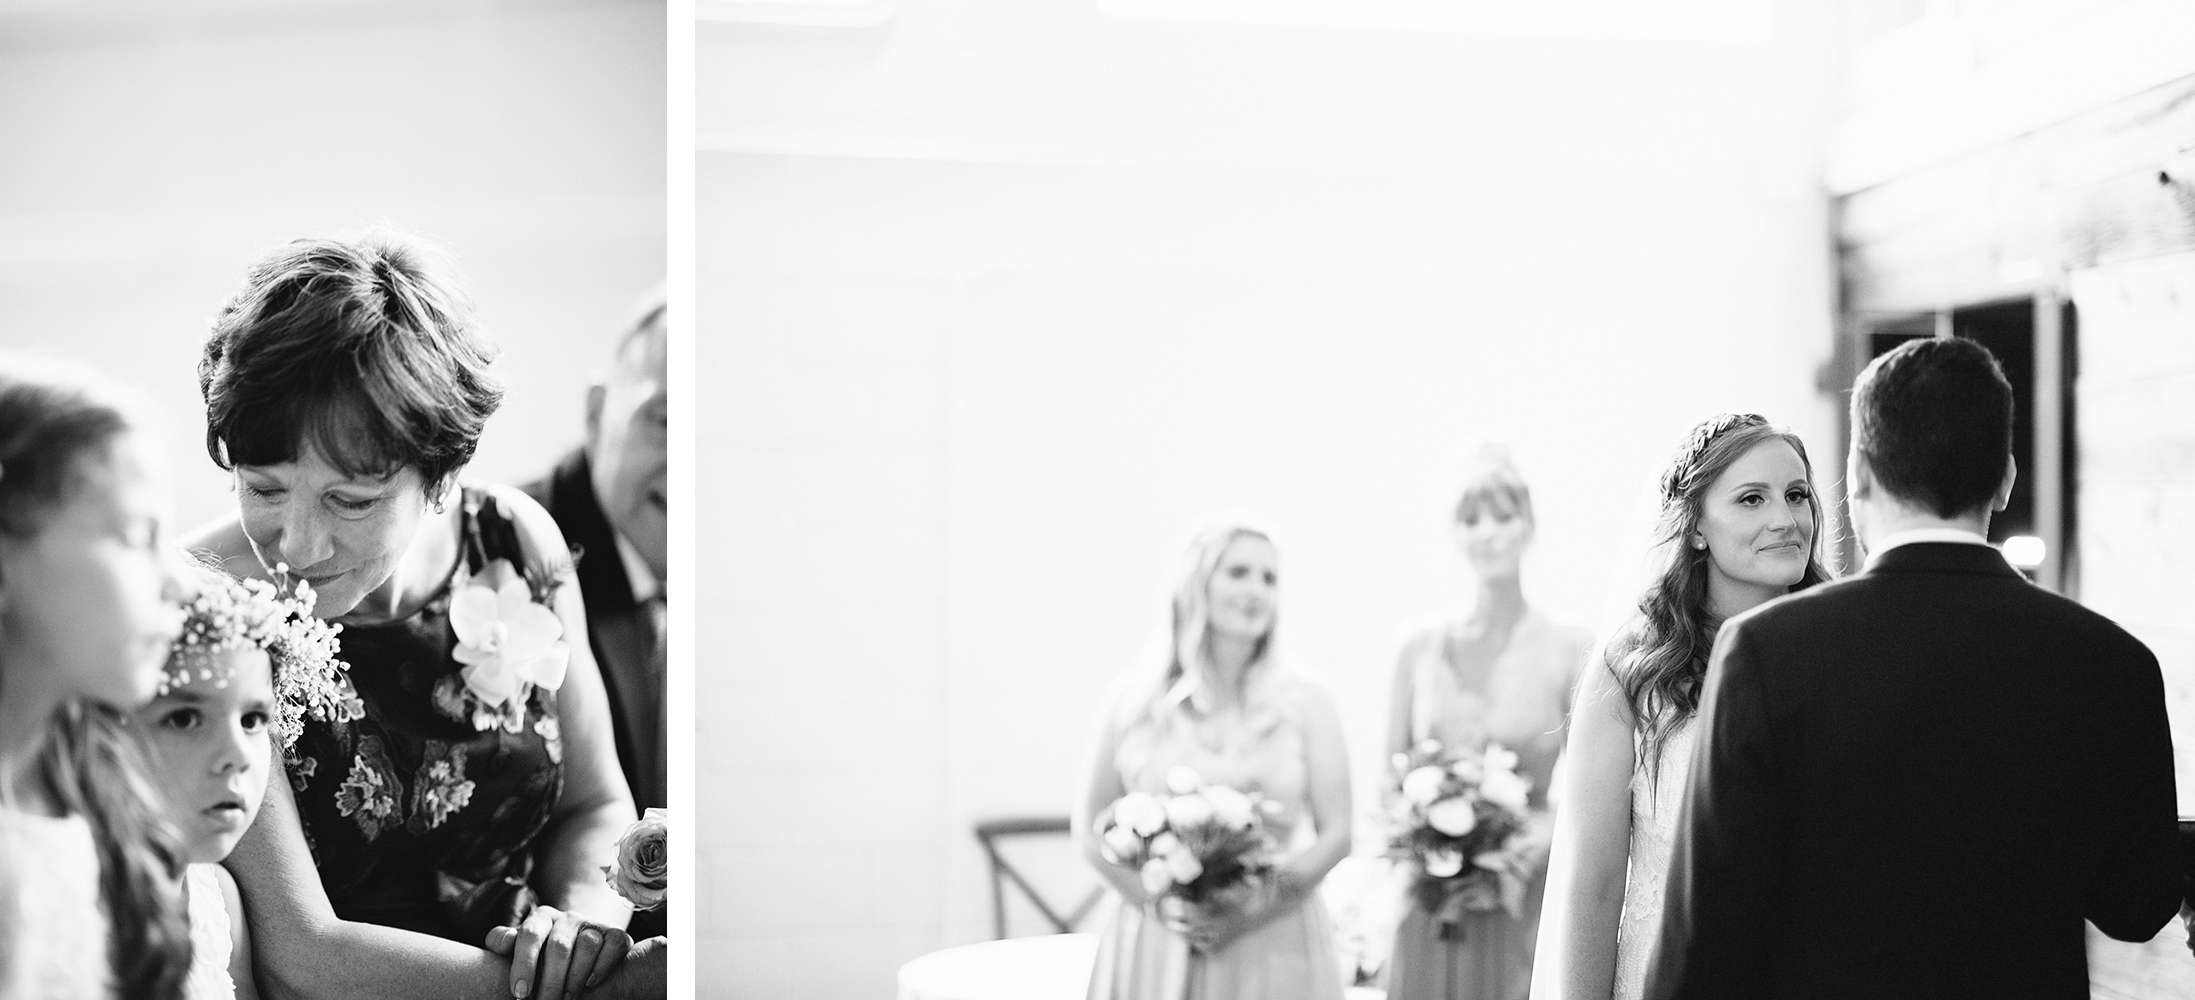 17-downtown-toronto-wedding-photographer-ryanne-hollies-photography-airship37-distillery-district-wedding-day-modern-minimalist-venues-in-toronto-ceremony-documentary-moments-bride-saying-vows-emotional-beautiful-bw.jpg